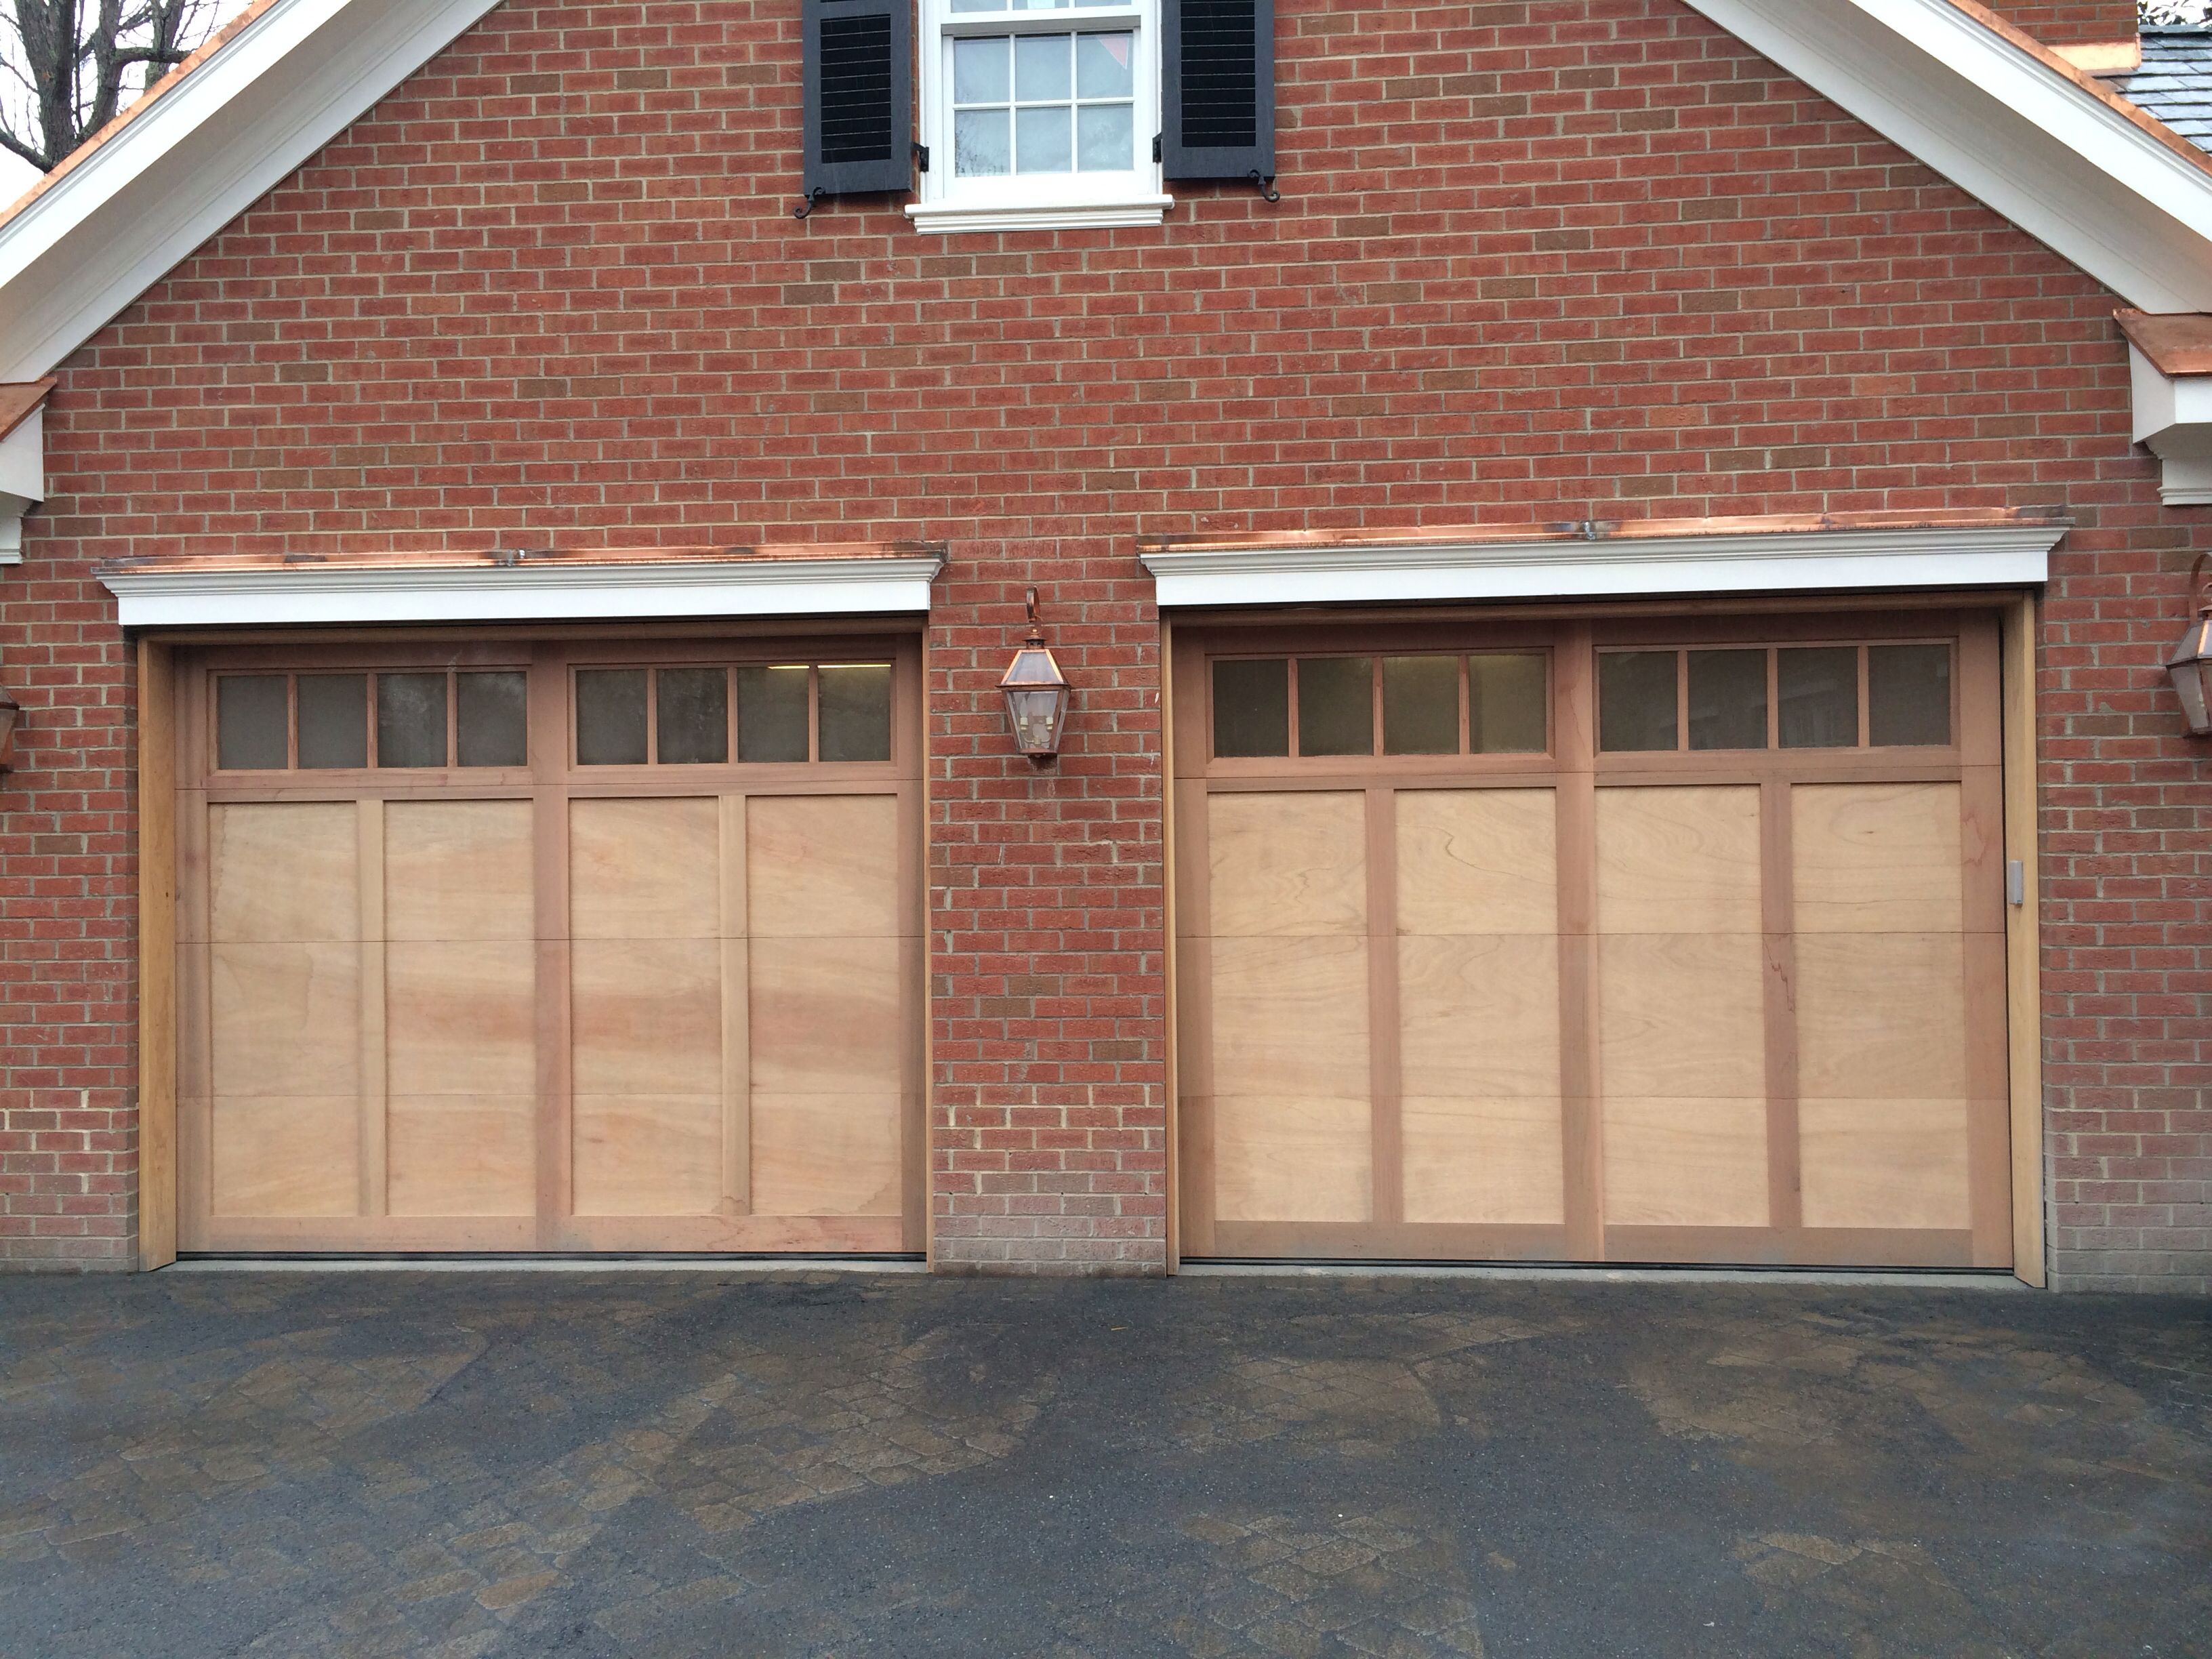 Captivating Mahogany Flush Garage Doors With Clear Cedar Trim Boards Made By American Garage  Door Systems,